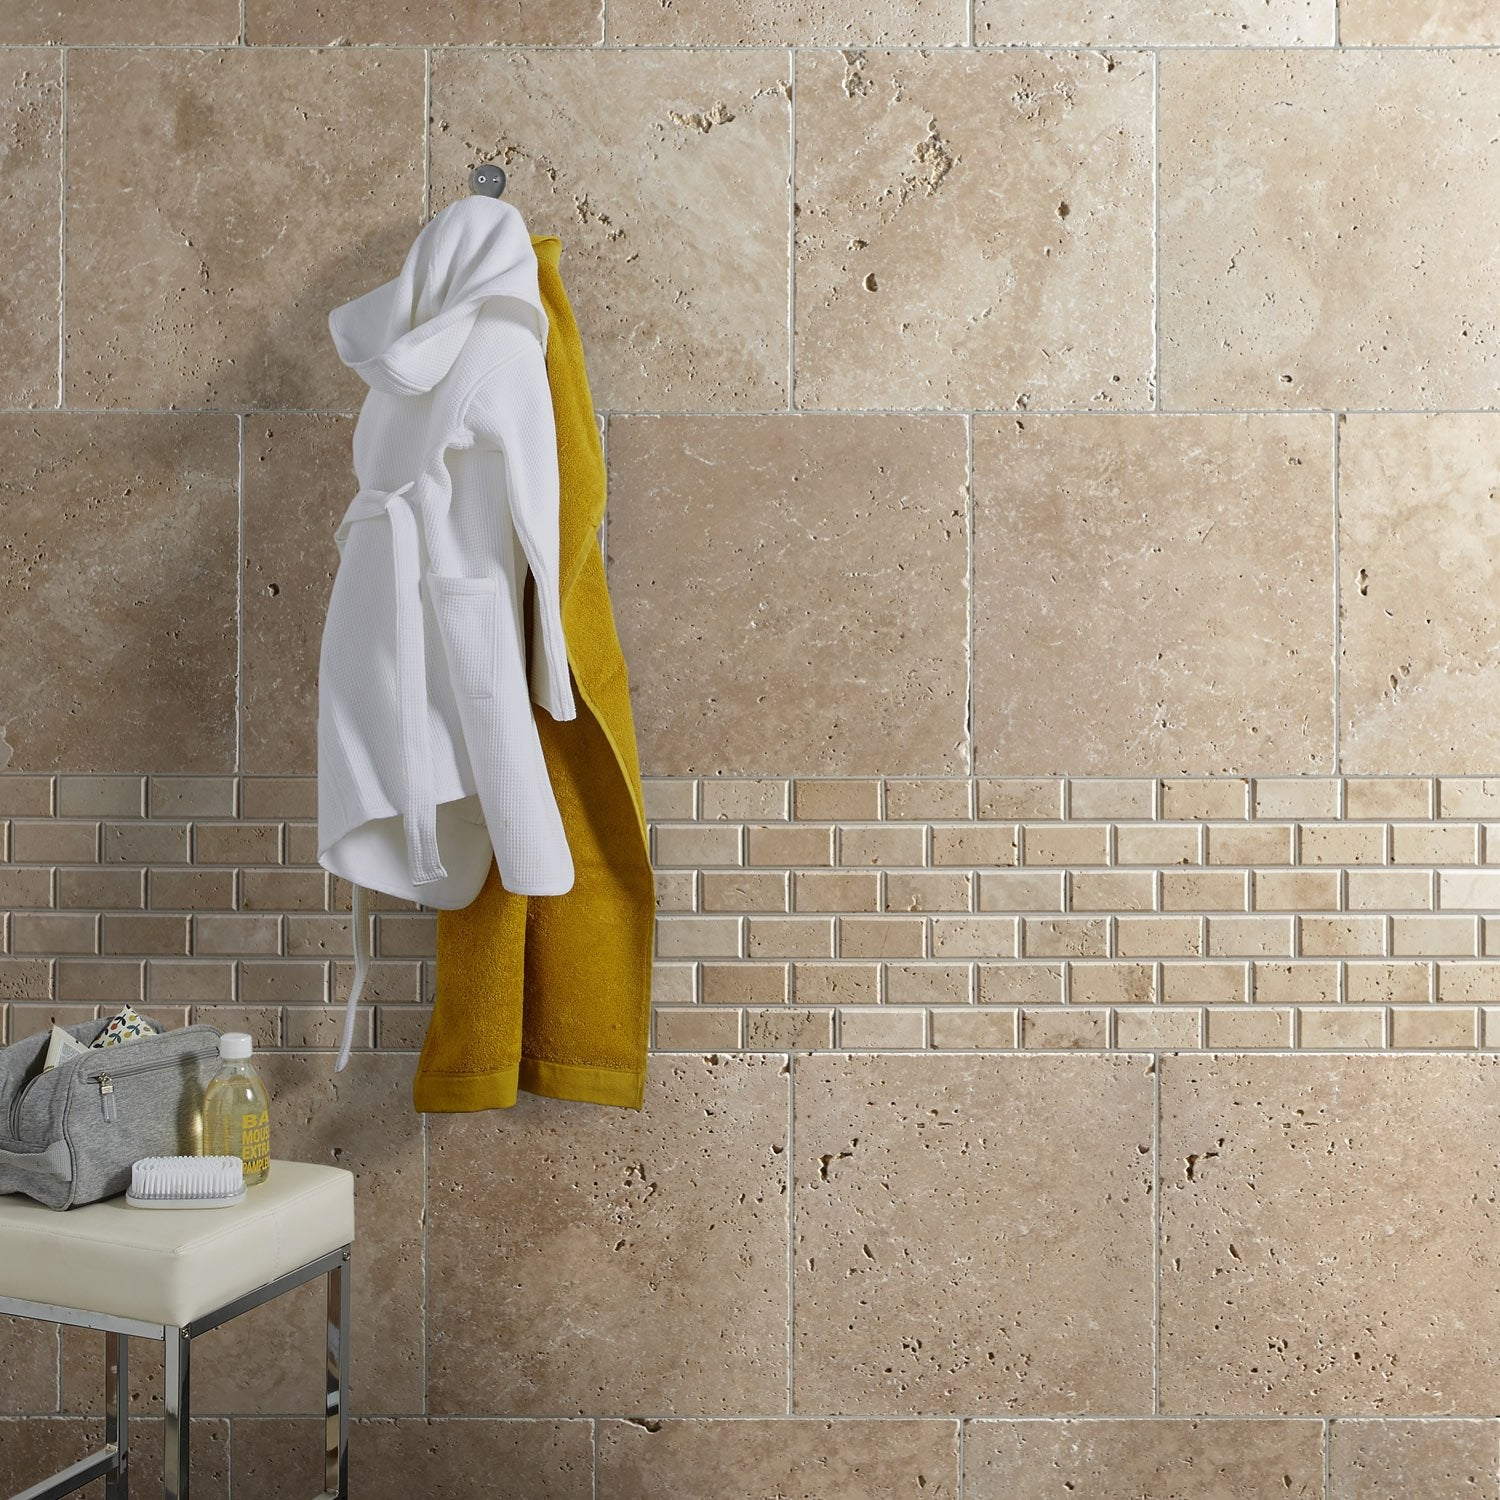 Travertin Sol Et Mur Beige Effet Pierre Travertin L 40 6 X L 40 6 Cm